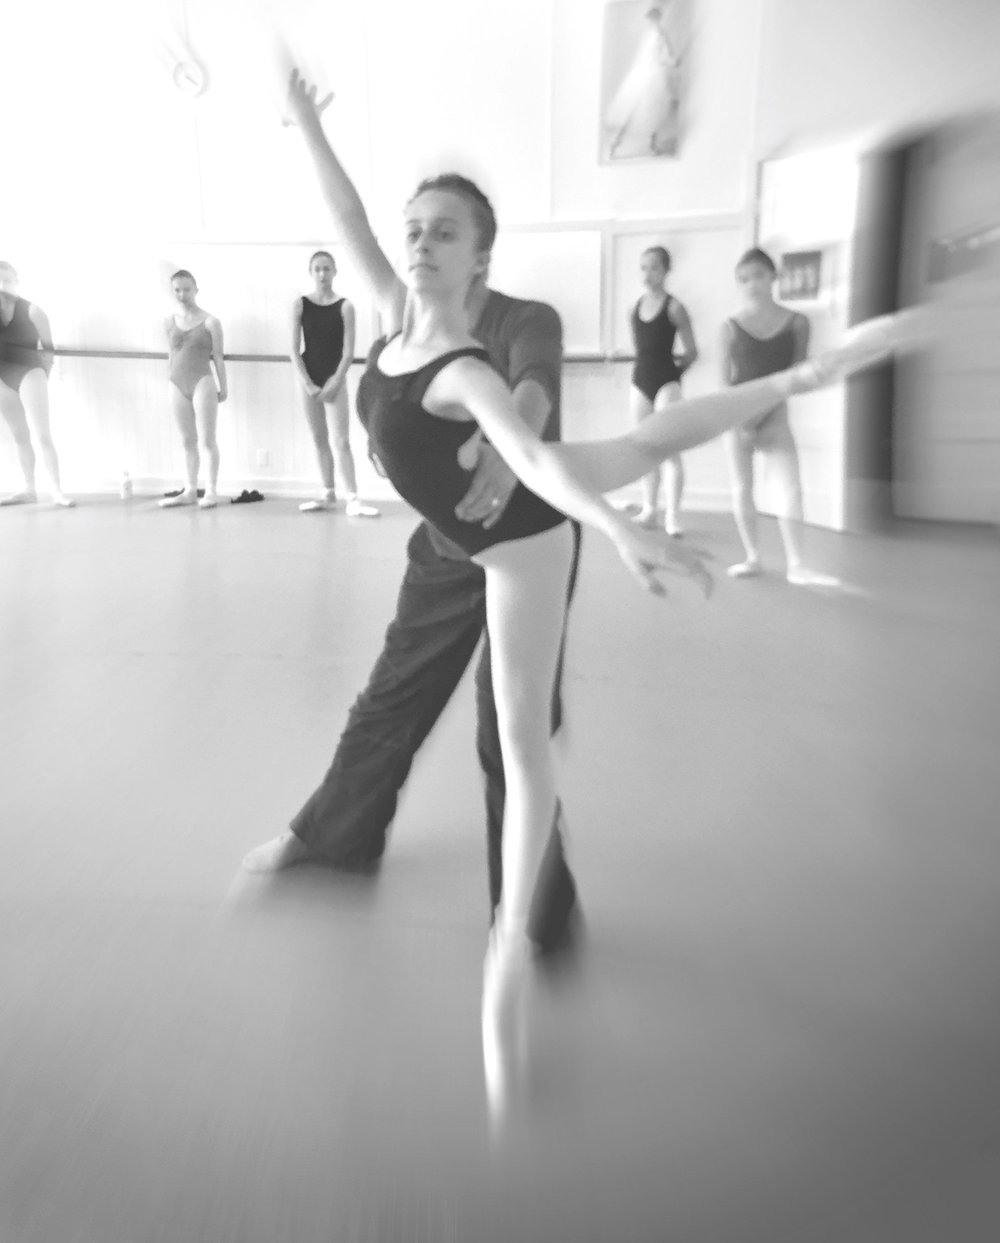 JUNE 2019 SESSIONS - Join us for advanced level daily technique, pointe or batterie, plus repertoire and partnering.